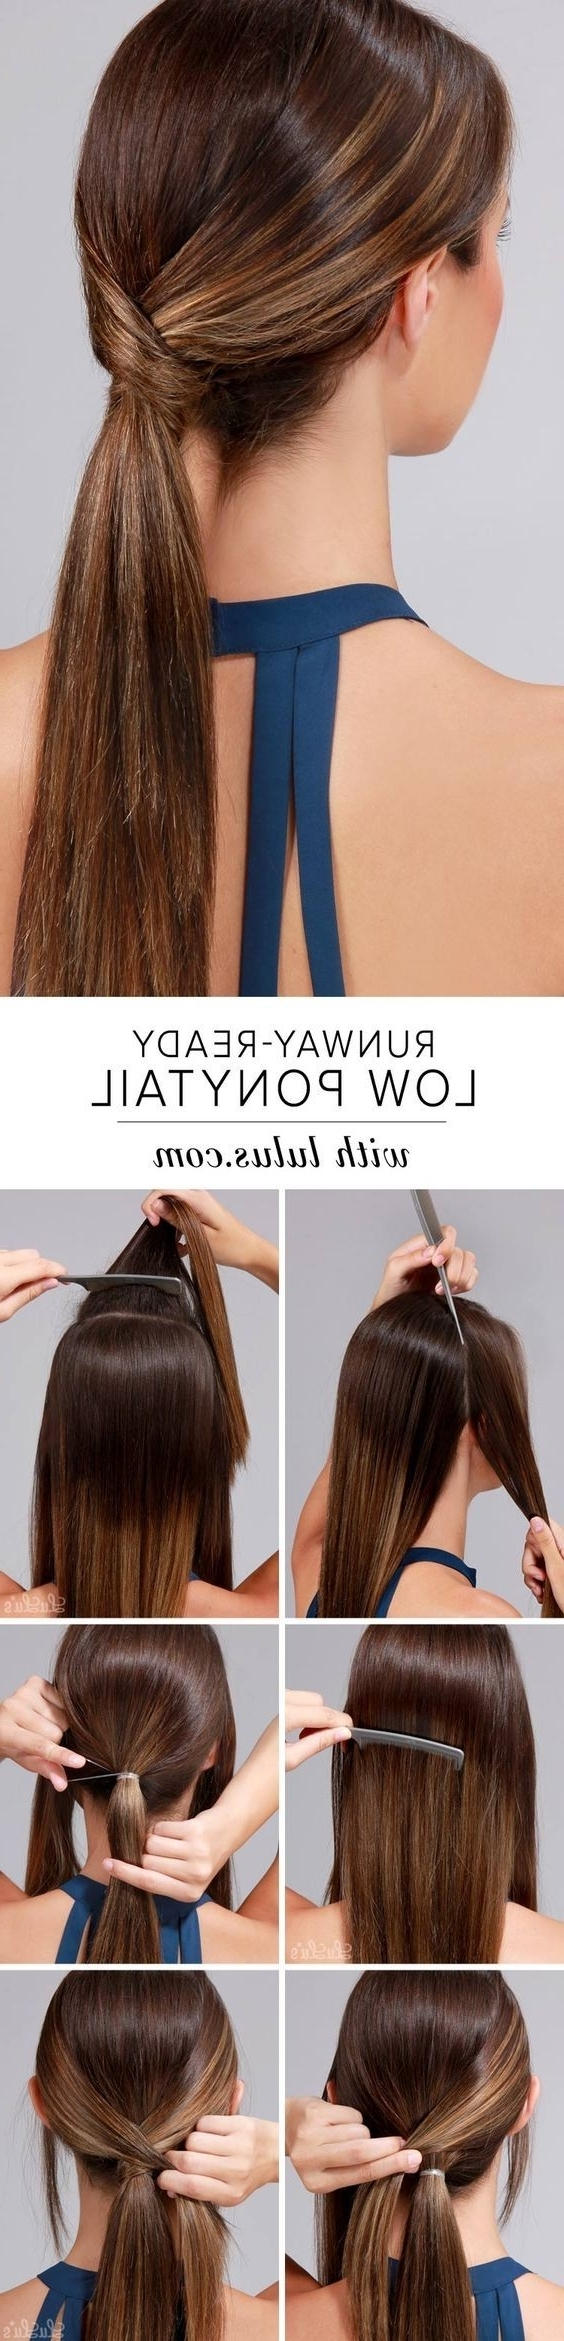 10 Easy Ponytail Hairstyles: Long Hair Style Ideas 2018 Within Best And Newest Low Twisted Pony Hairstyles For Ombre Hair (View 2 of 20)